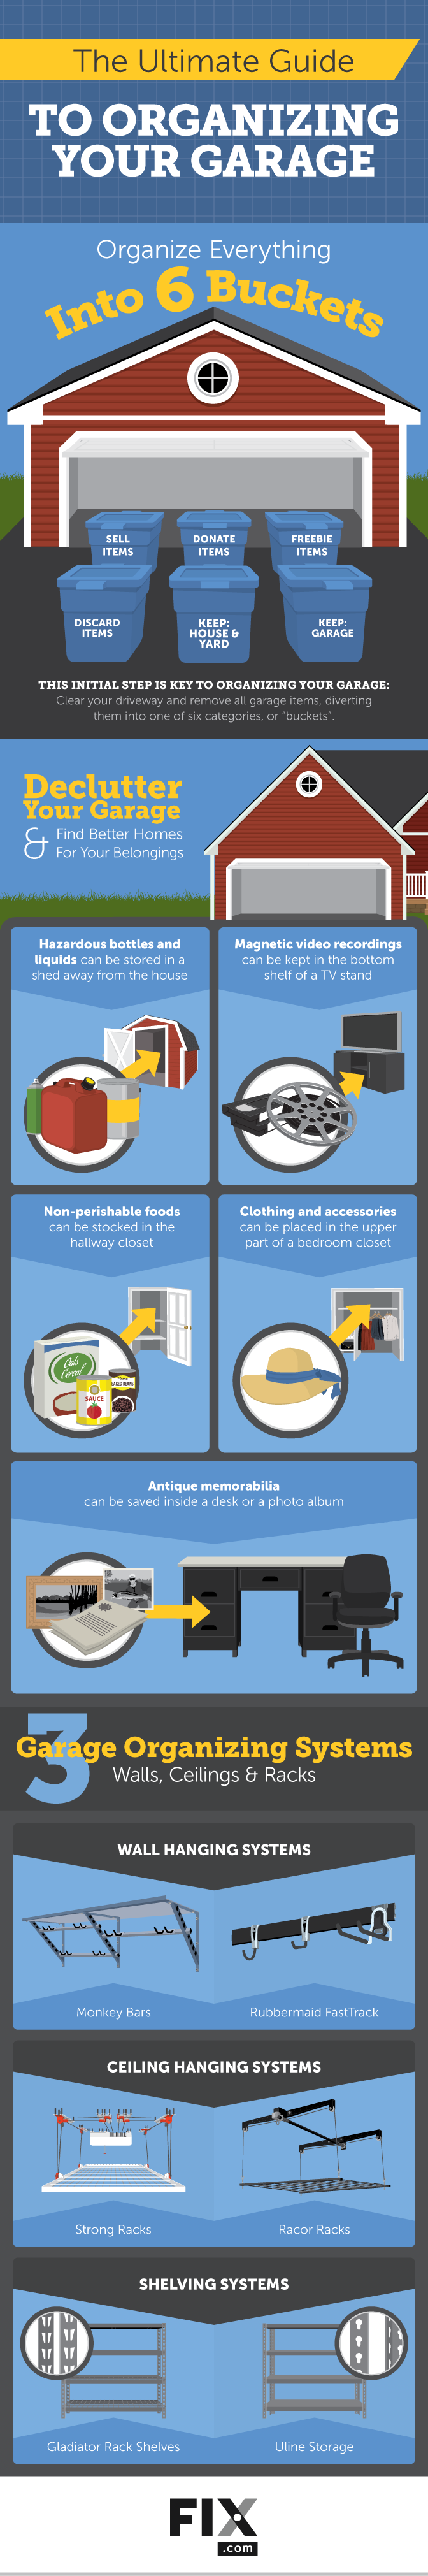 The Six Bucket Rule: The Ultimate Guide to Re-Organizing Your Garage - Infographic